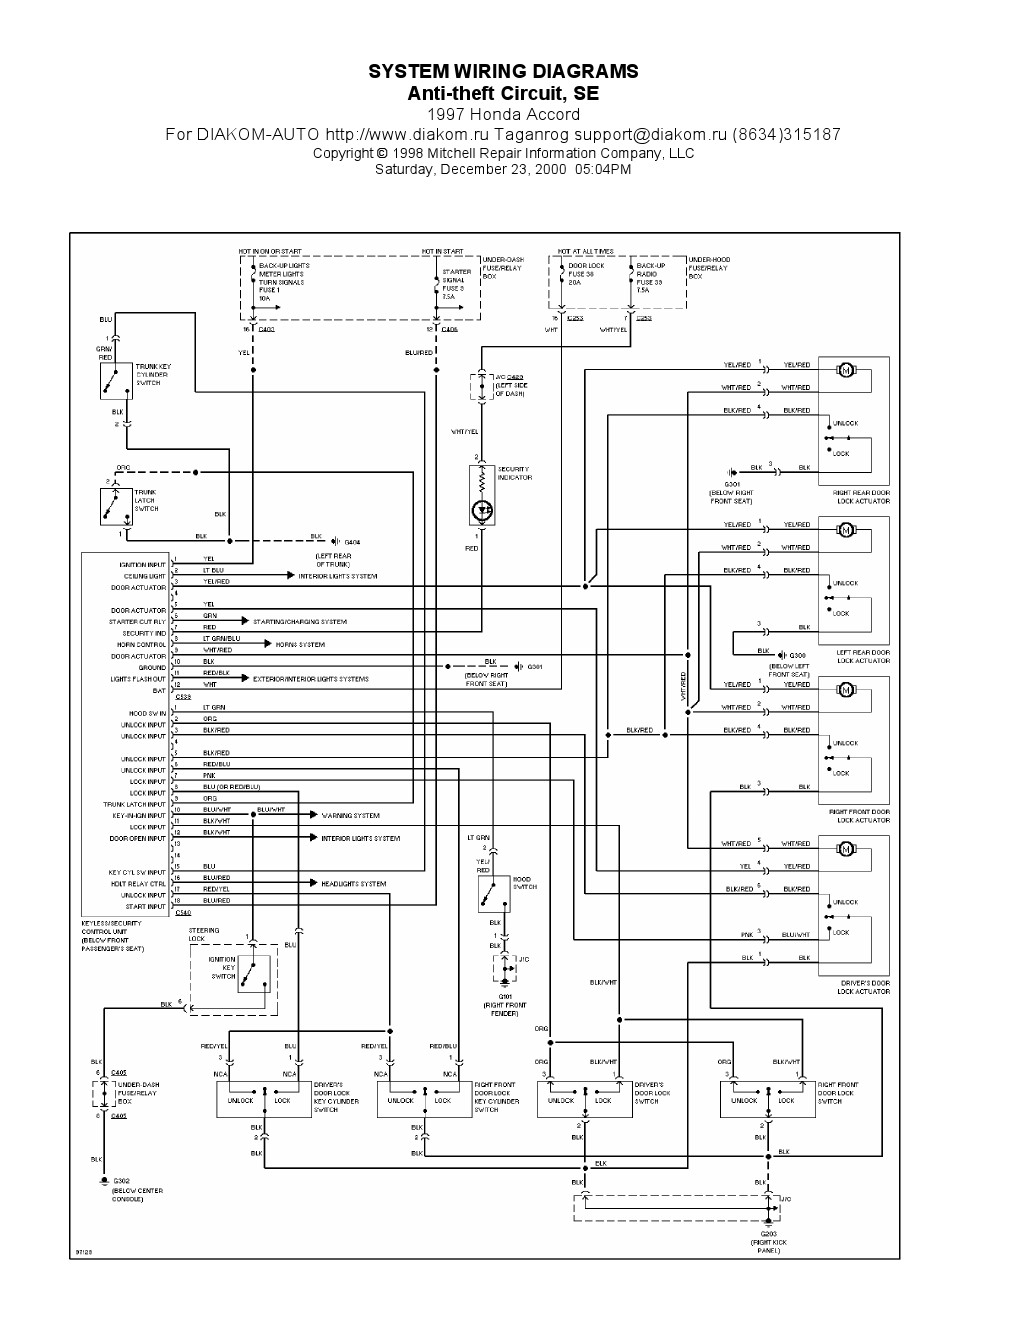 hight resolution of 1997 honda accord wiring diagram lighting wiring diagram expert 1997 honda accord wiring diagram pdf 1997 honda accord diagram